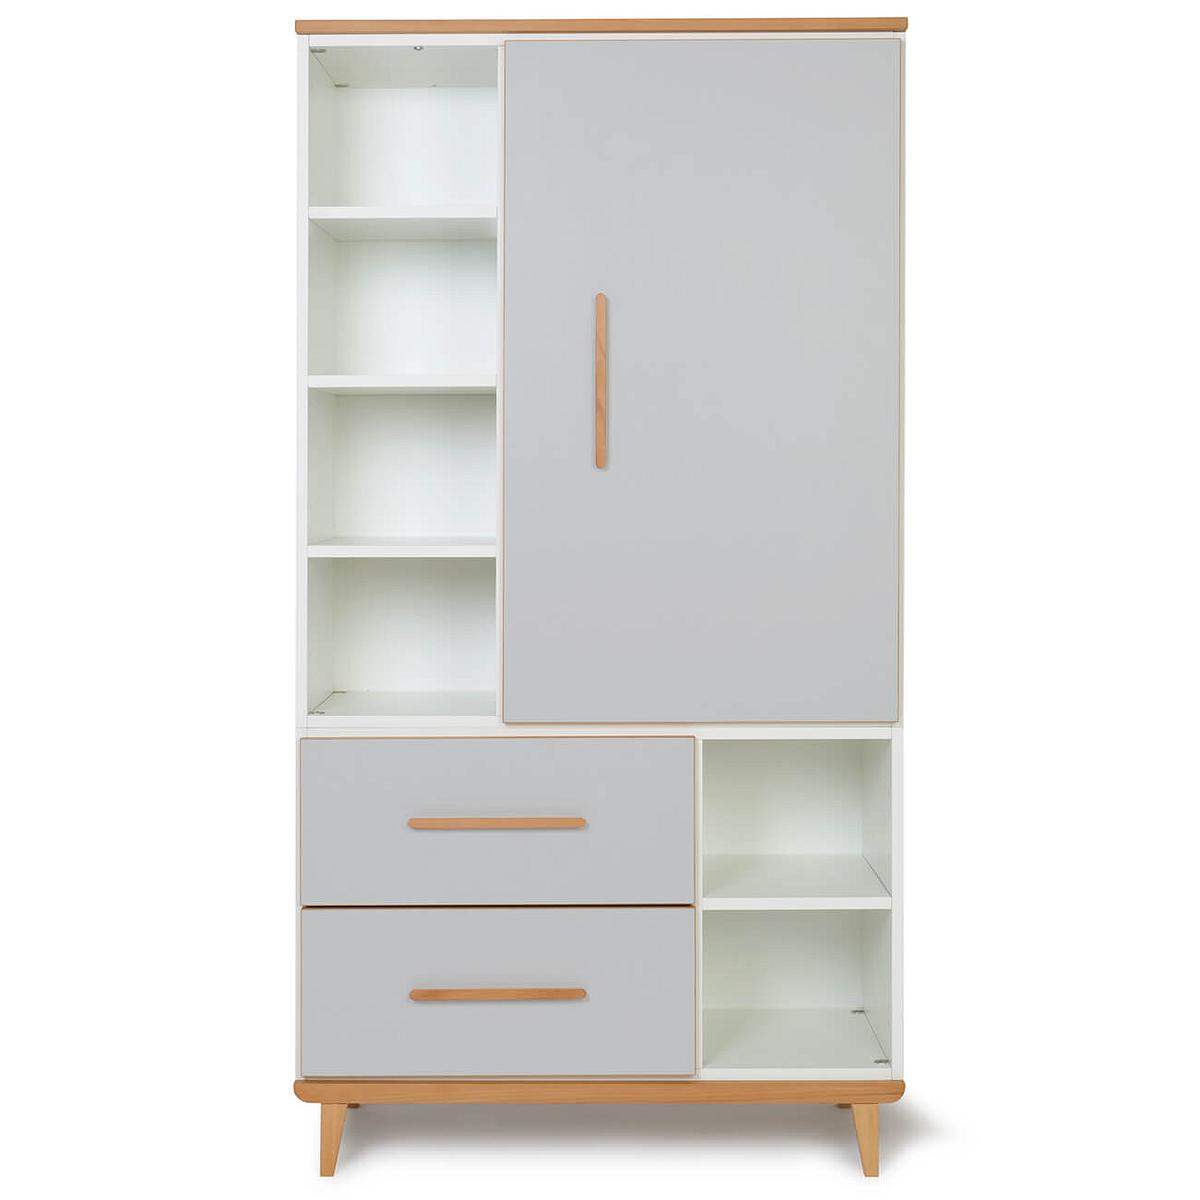 Armoire 173cm 1 porte 2 tiroirs NADO By A.K. manhattan grey